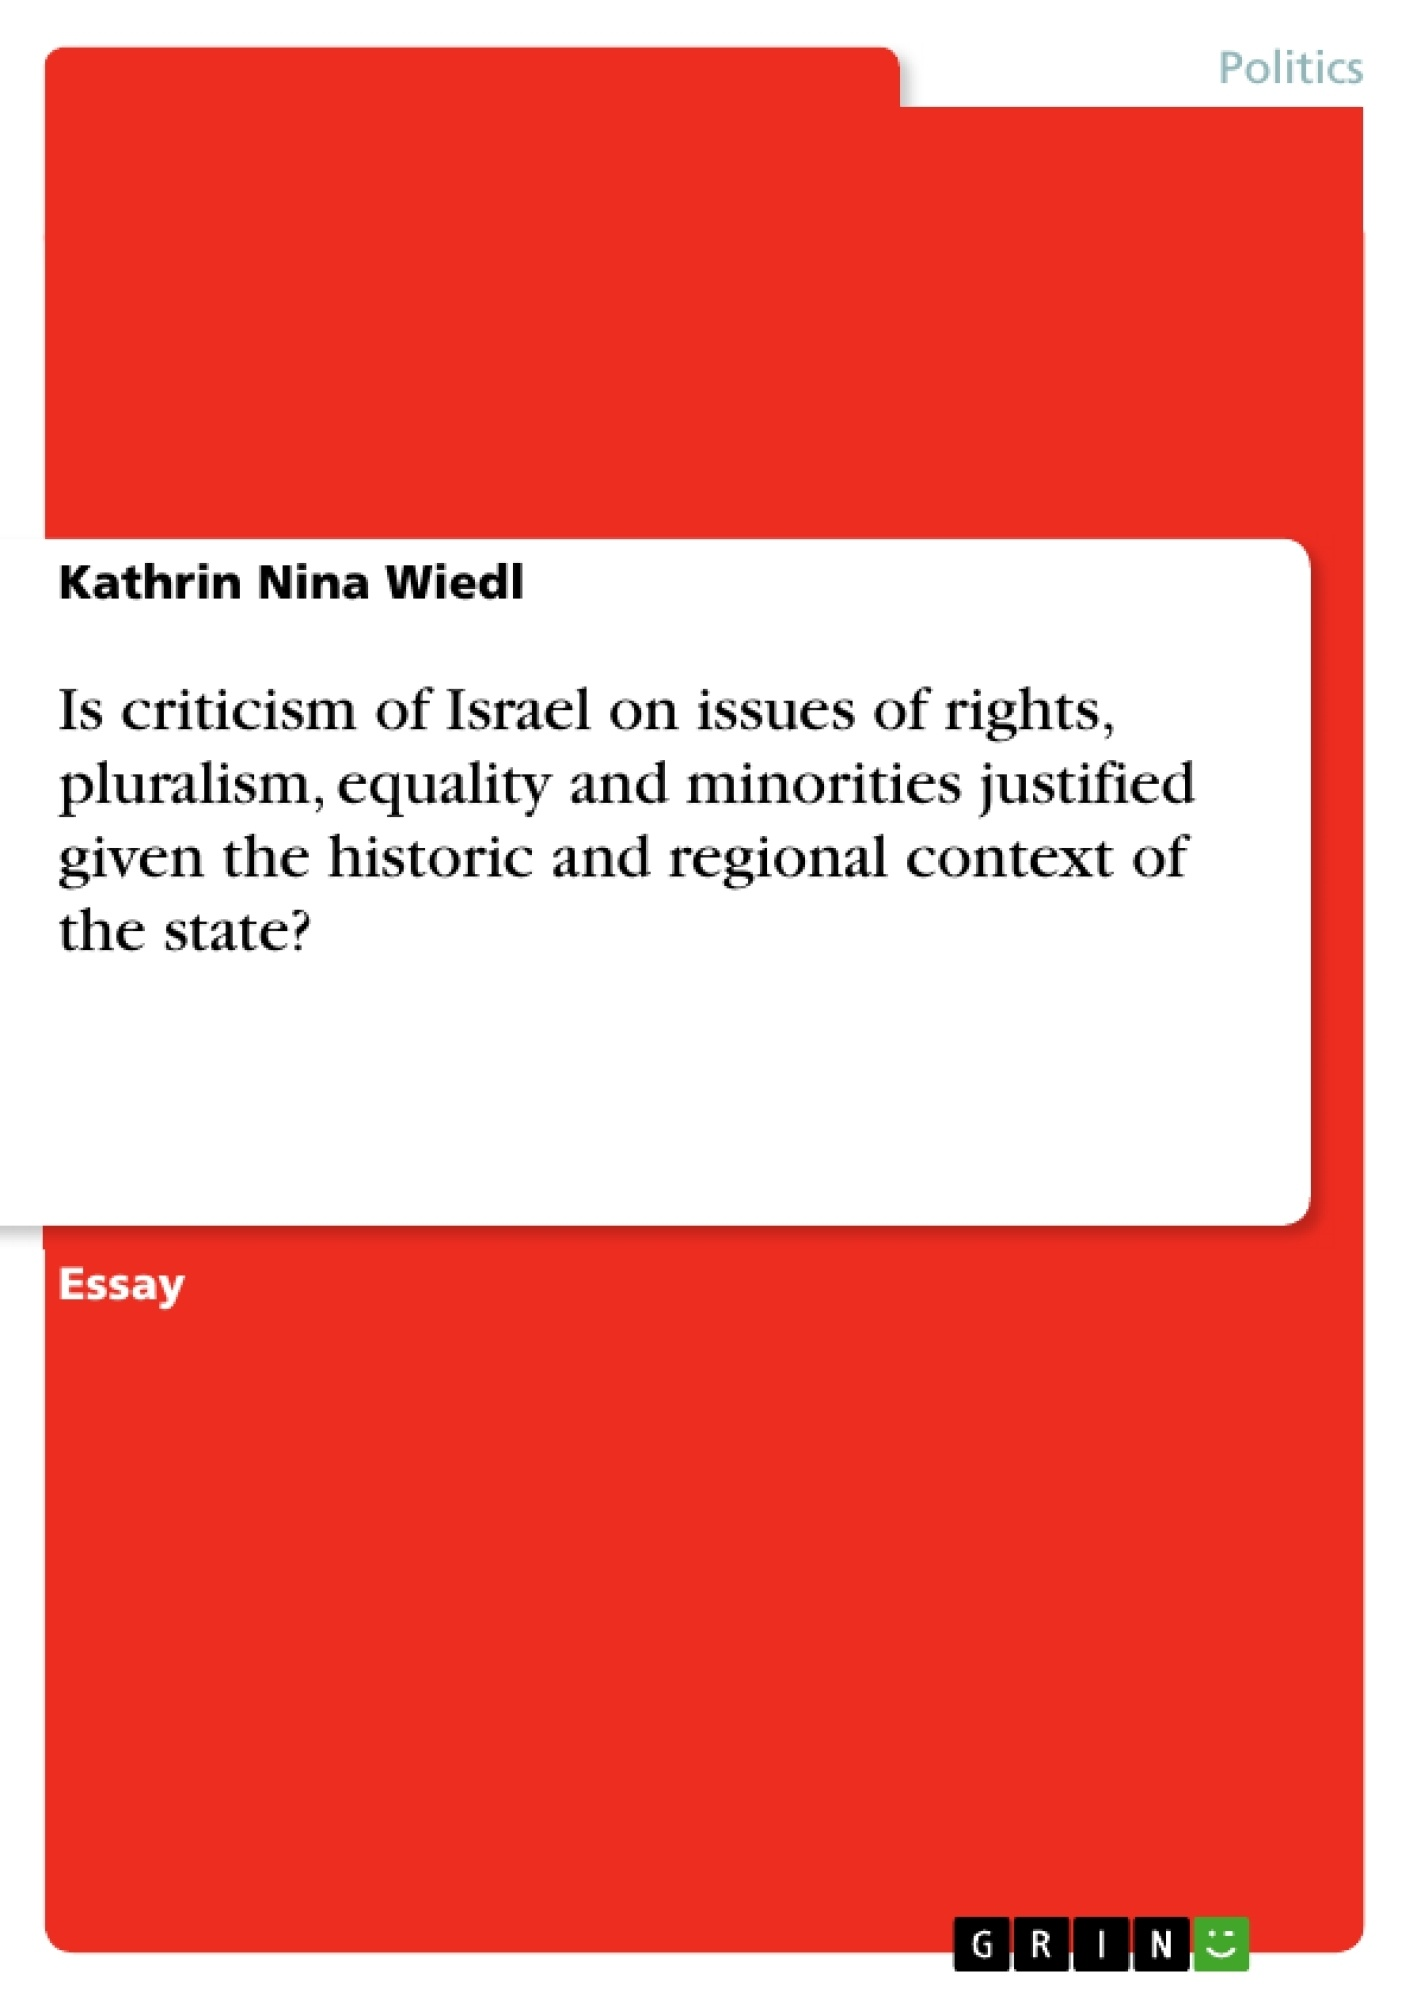 Title: Is criticism of Israel on issues of rights, pluralism, equality and minorities justified given the historic and regional context of the state?